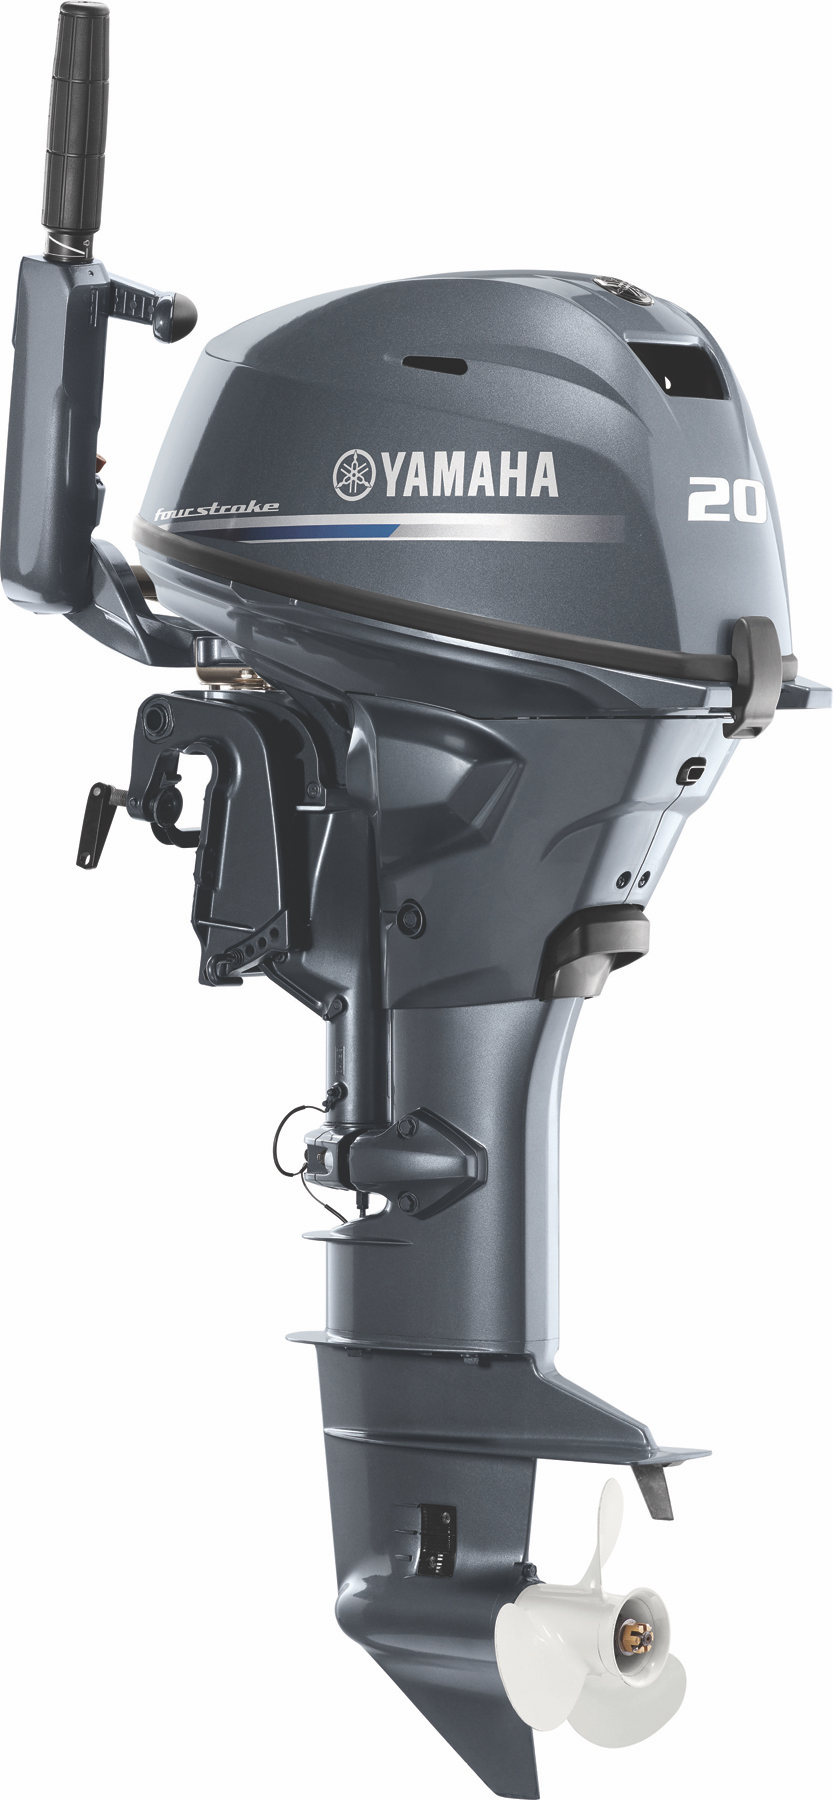 Yamaha F20 and T25 Outboards Revealed - boats com